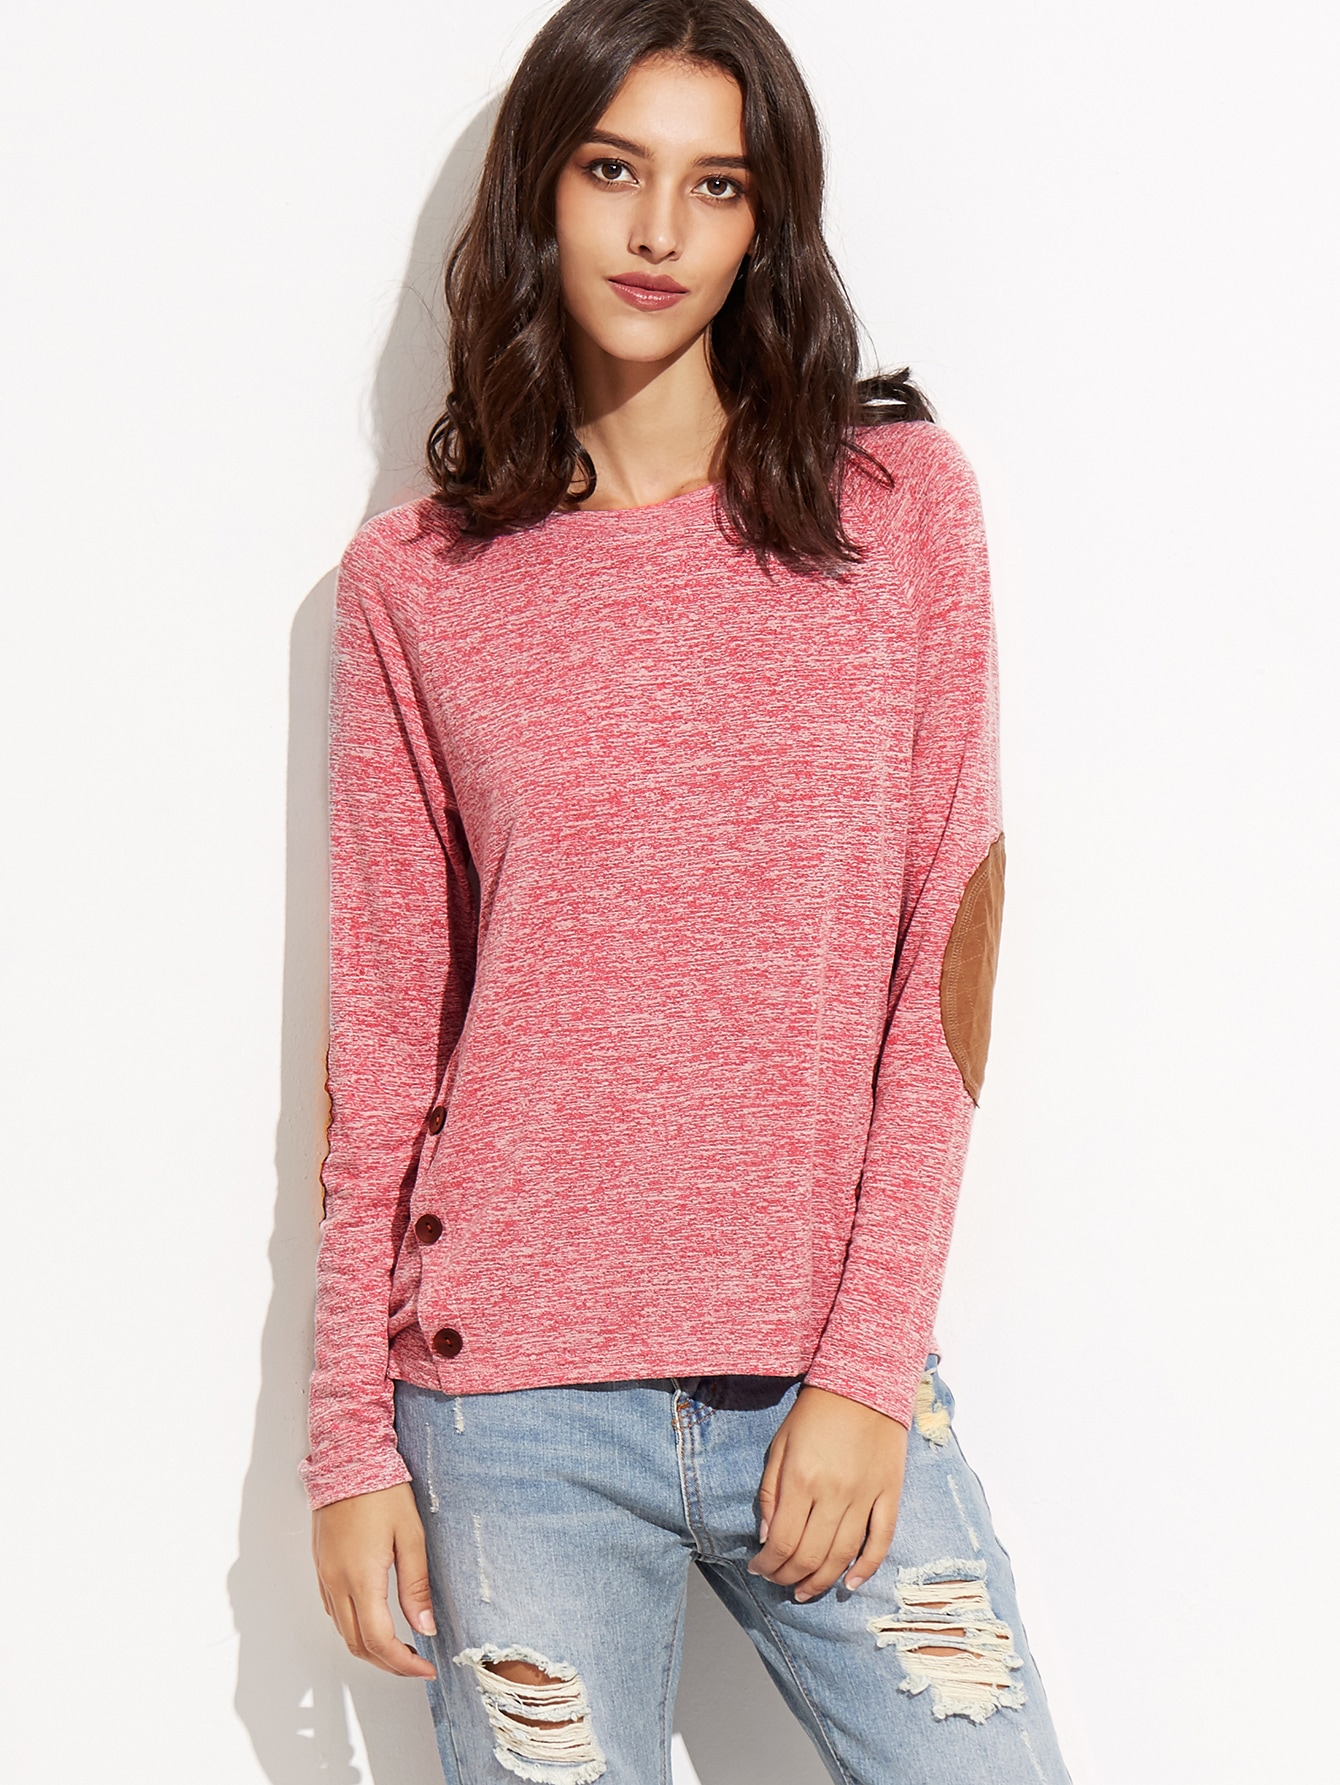 Hot Pink Marled Knit T-shirt With Elbow Patch